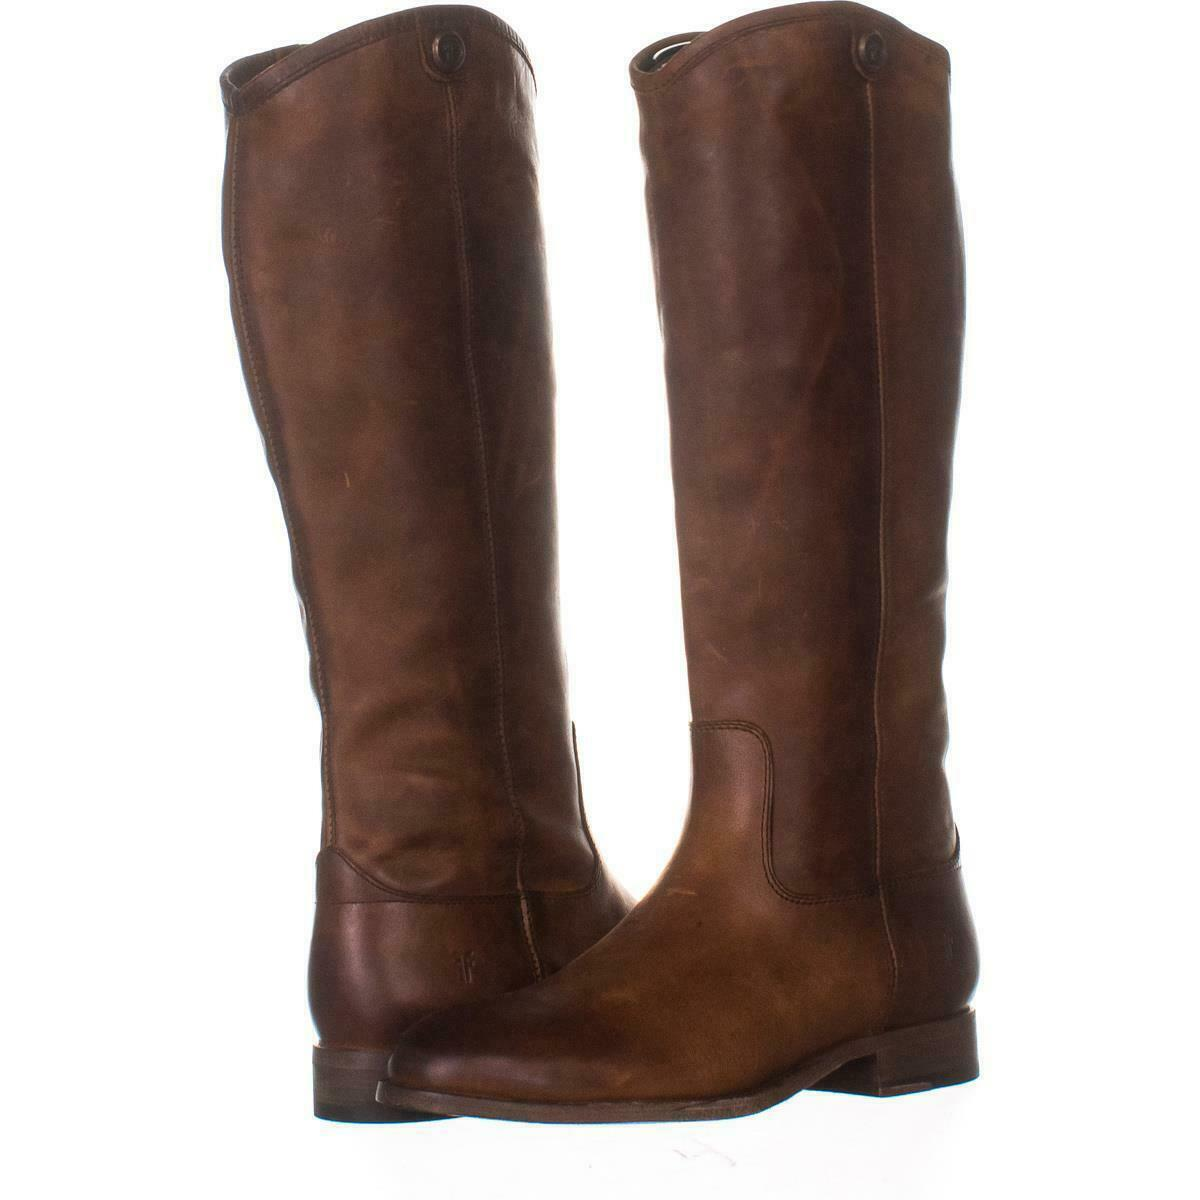 a91d74d4ebe Frye Boot: 1 customer review and 521 listings